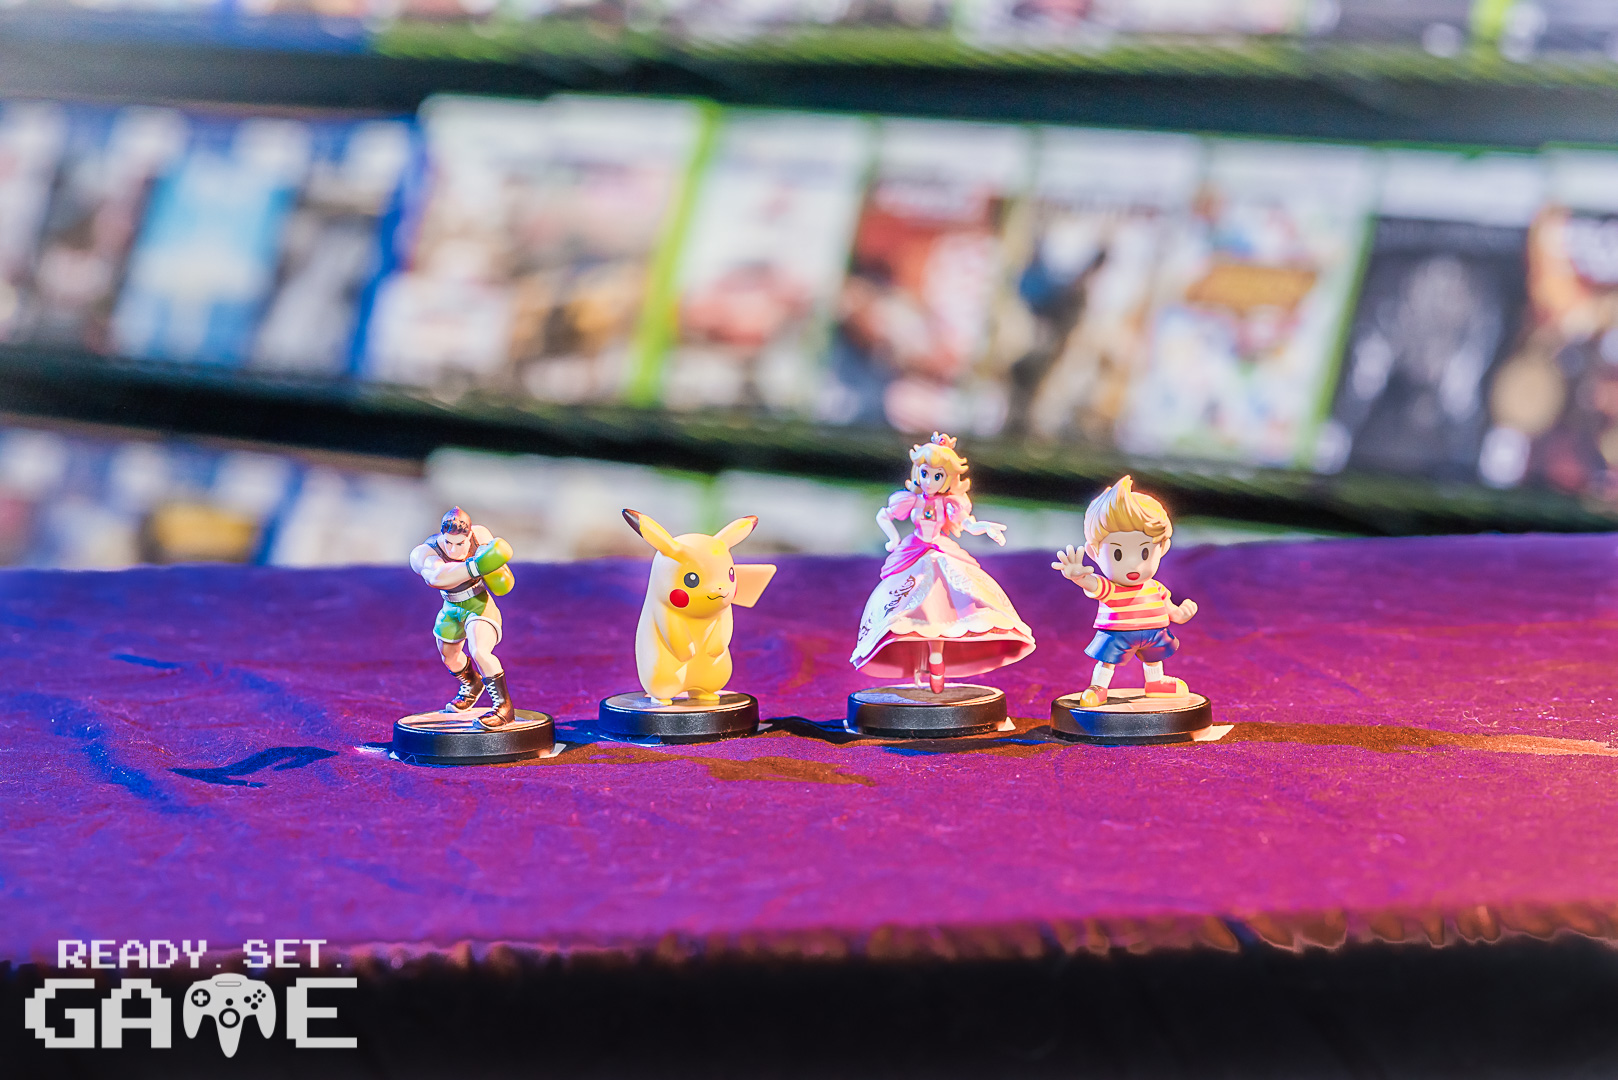 Ready set game toy figurines.